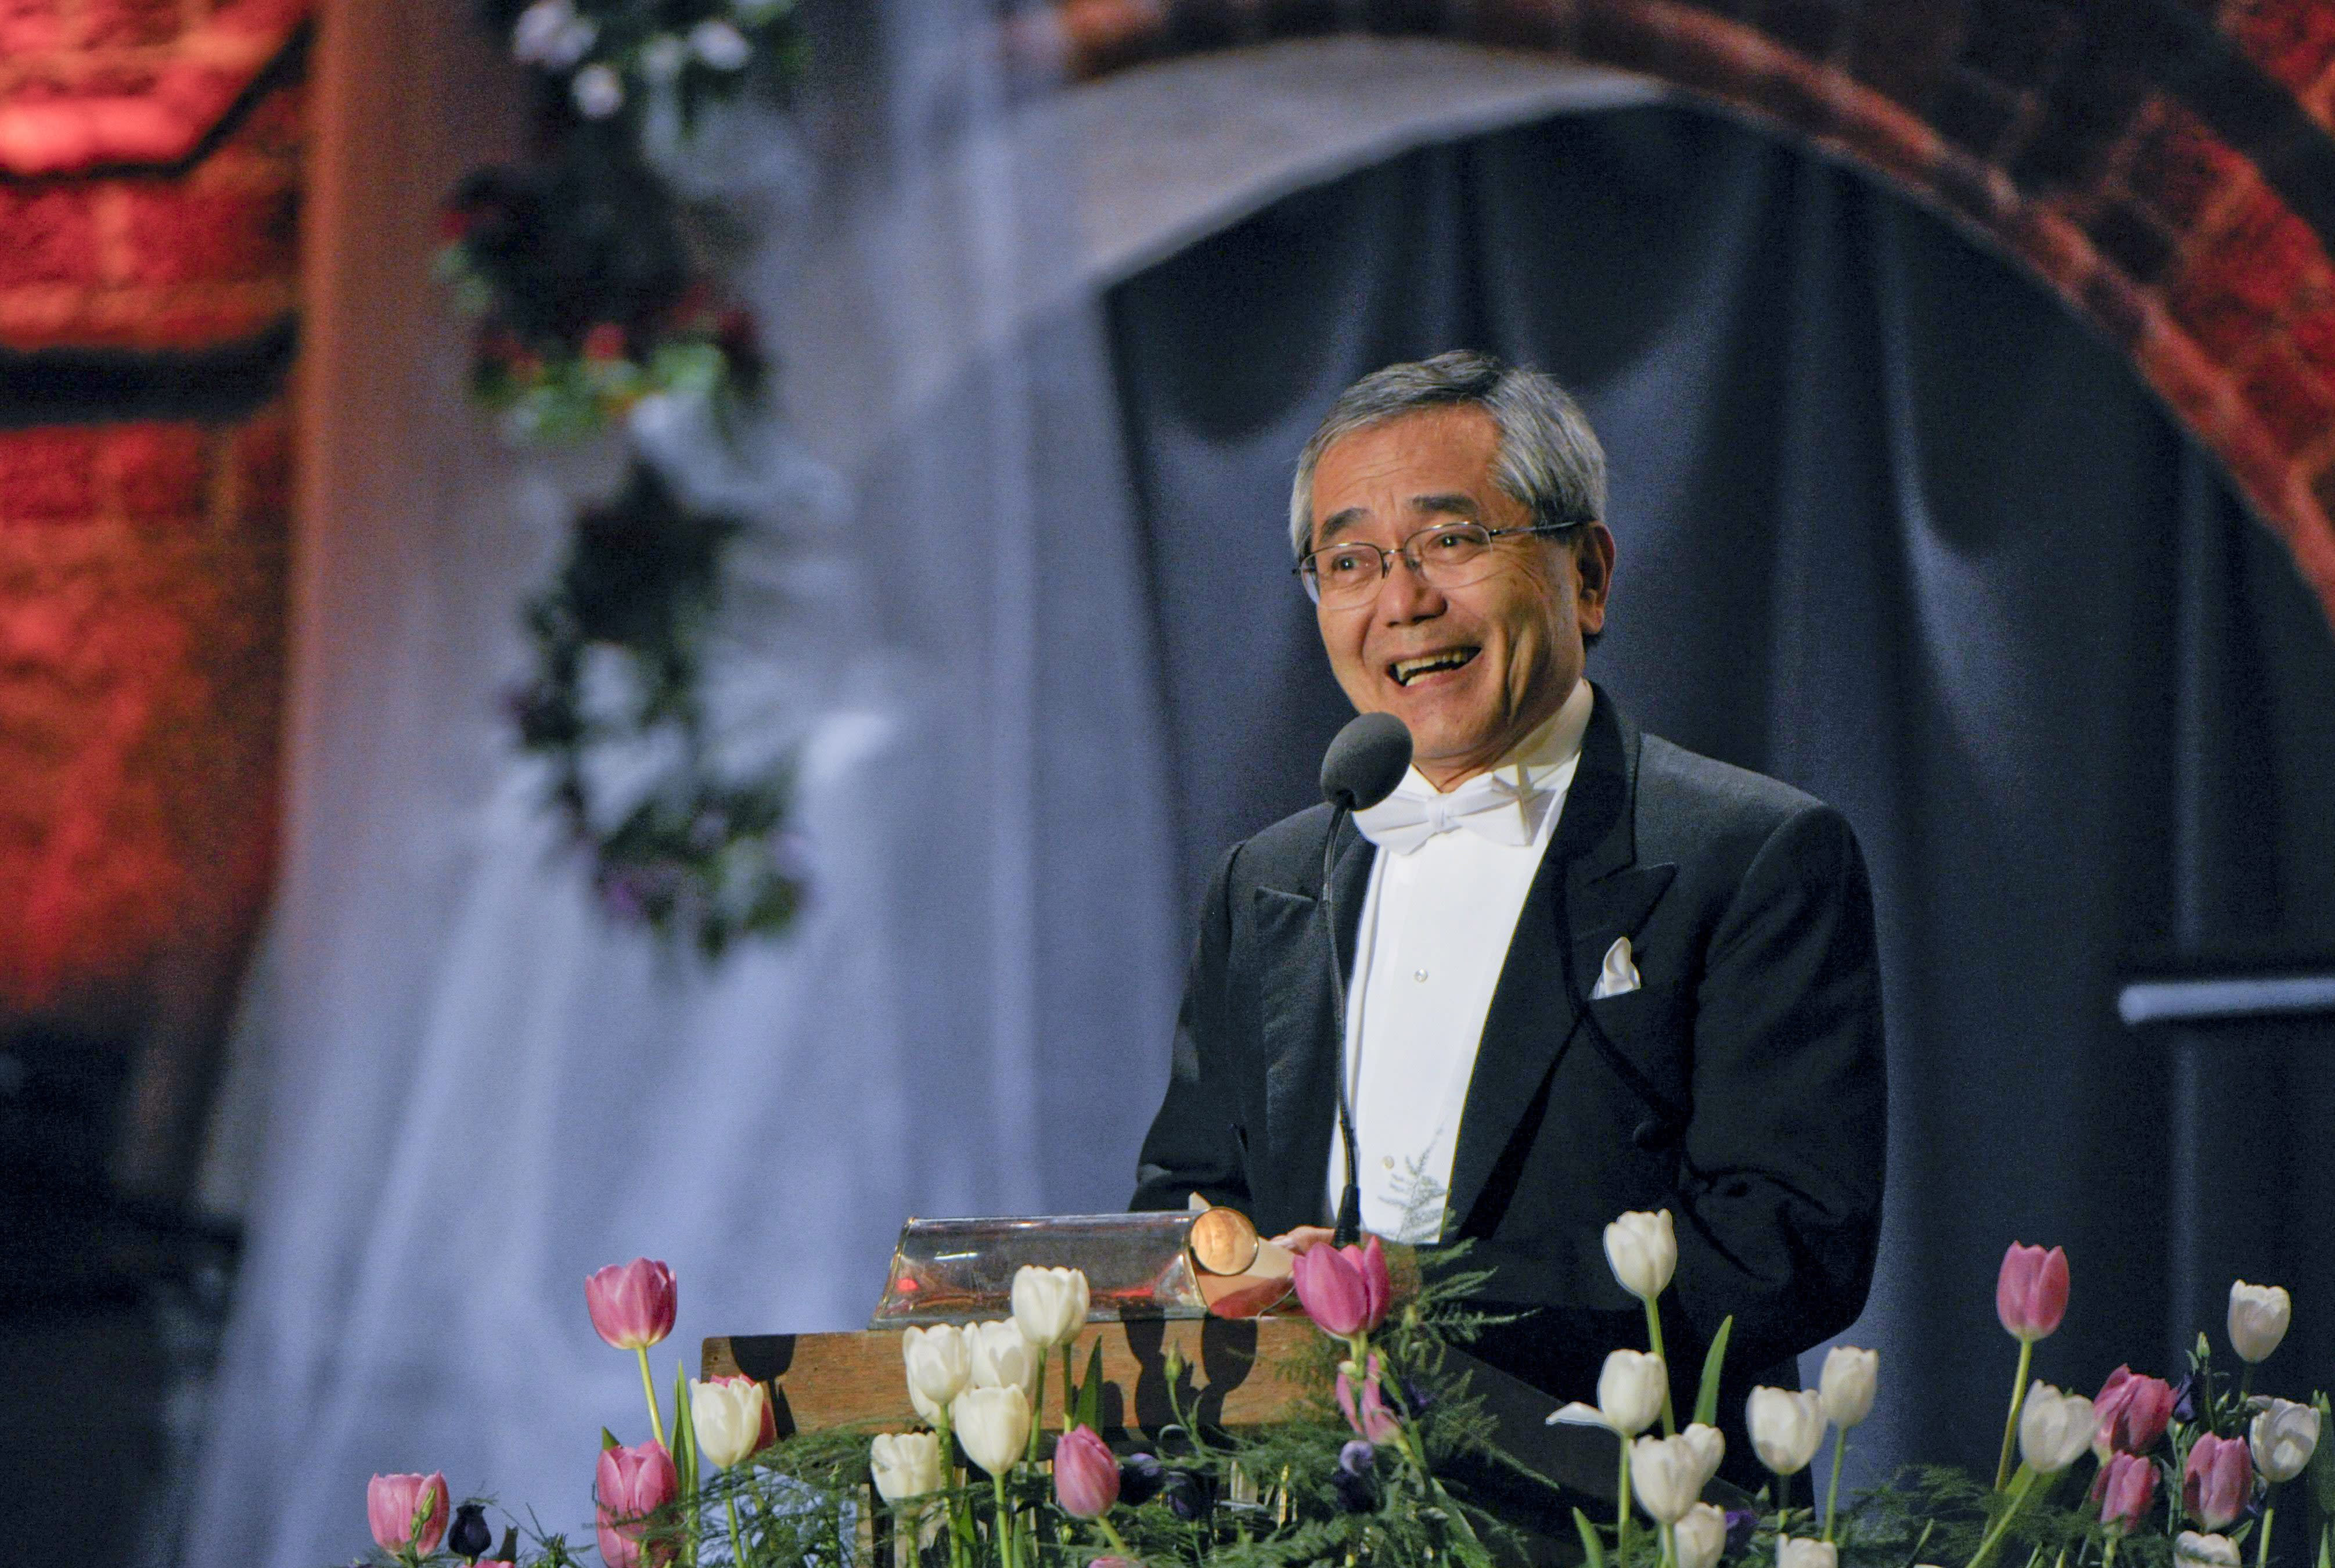 A Missing Nobel Prize Winner Has Been Found Wandering a Rural Road in a Daze